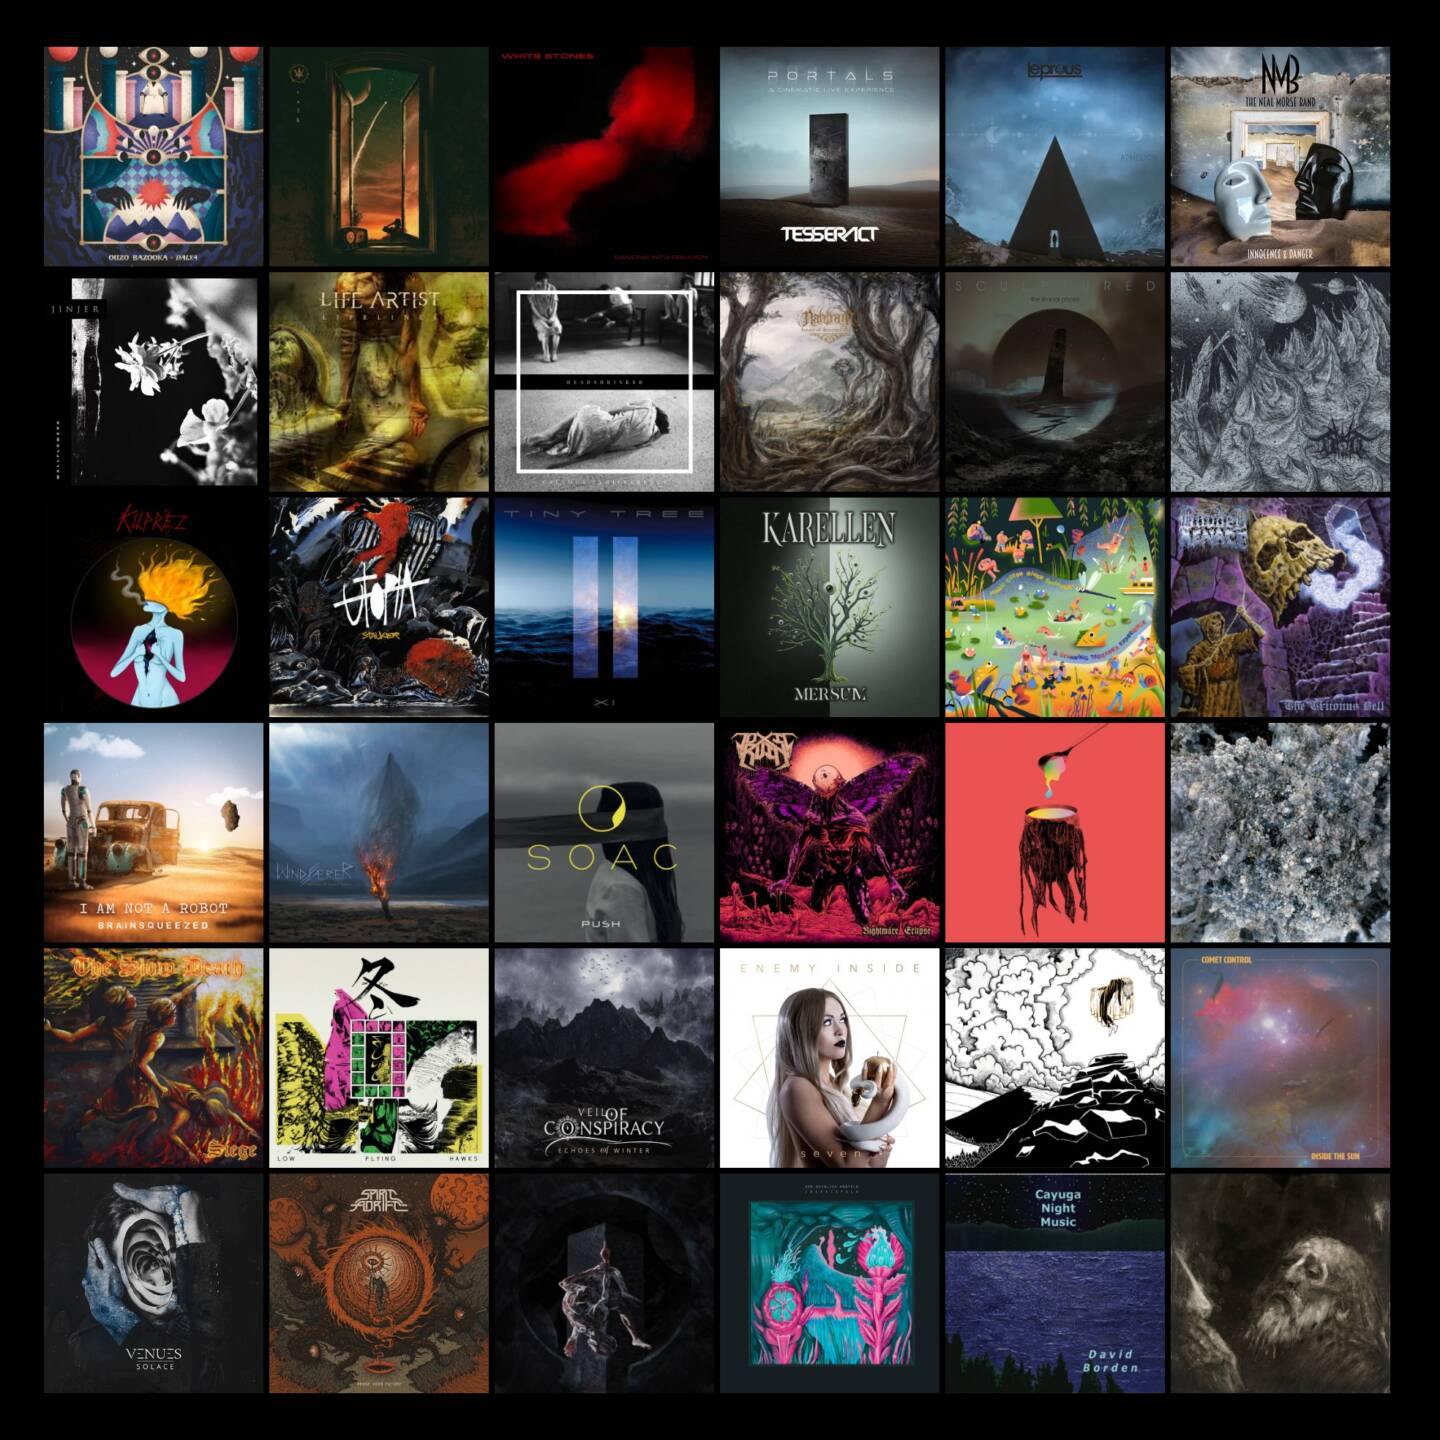 4 eclectic and diverse albums for your weekend